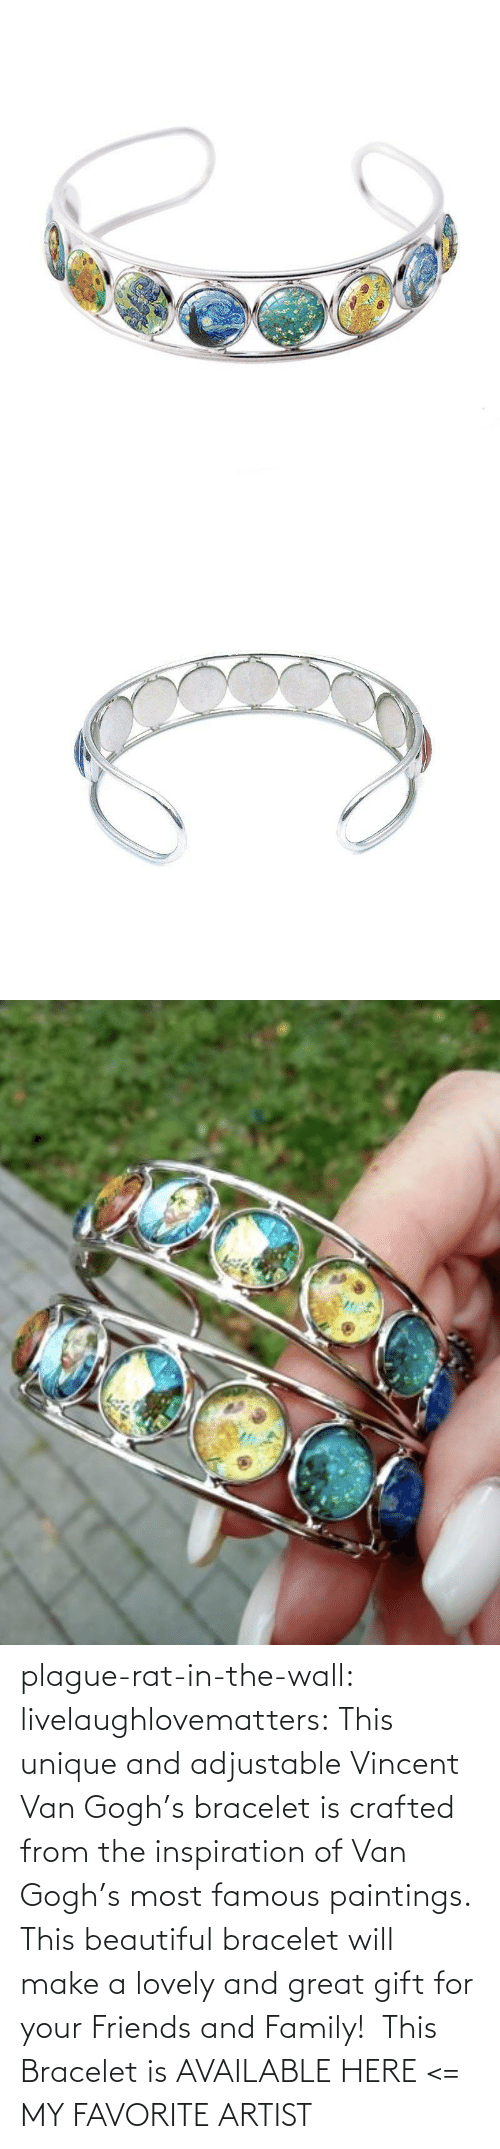 van: plague-rat-in-the-wall:  livelaughlovematters: This unique and adjustable Vincent Van Gogh's bracelet is crafted from the inspiration of Van Gogh's most famous paintings. This beautiful bracelet will make a lovely and great gift for your Friends and Family!  This Bracelet is AVAILABLE HERE <=  MY FAVORITE ARTIST